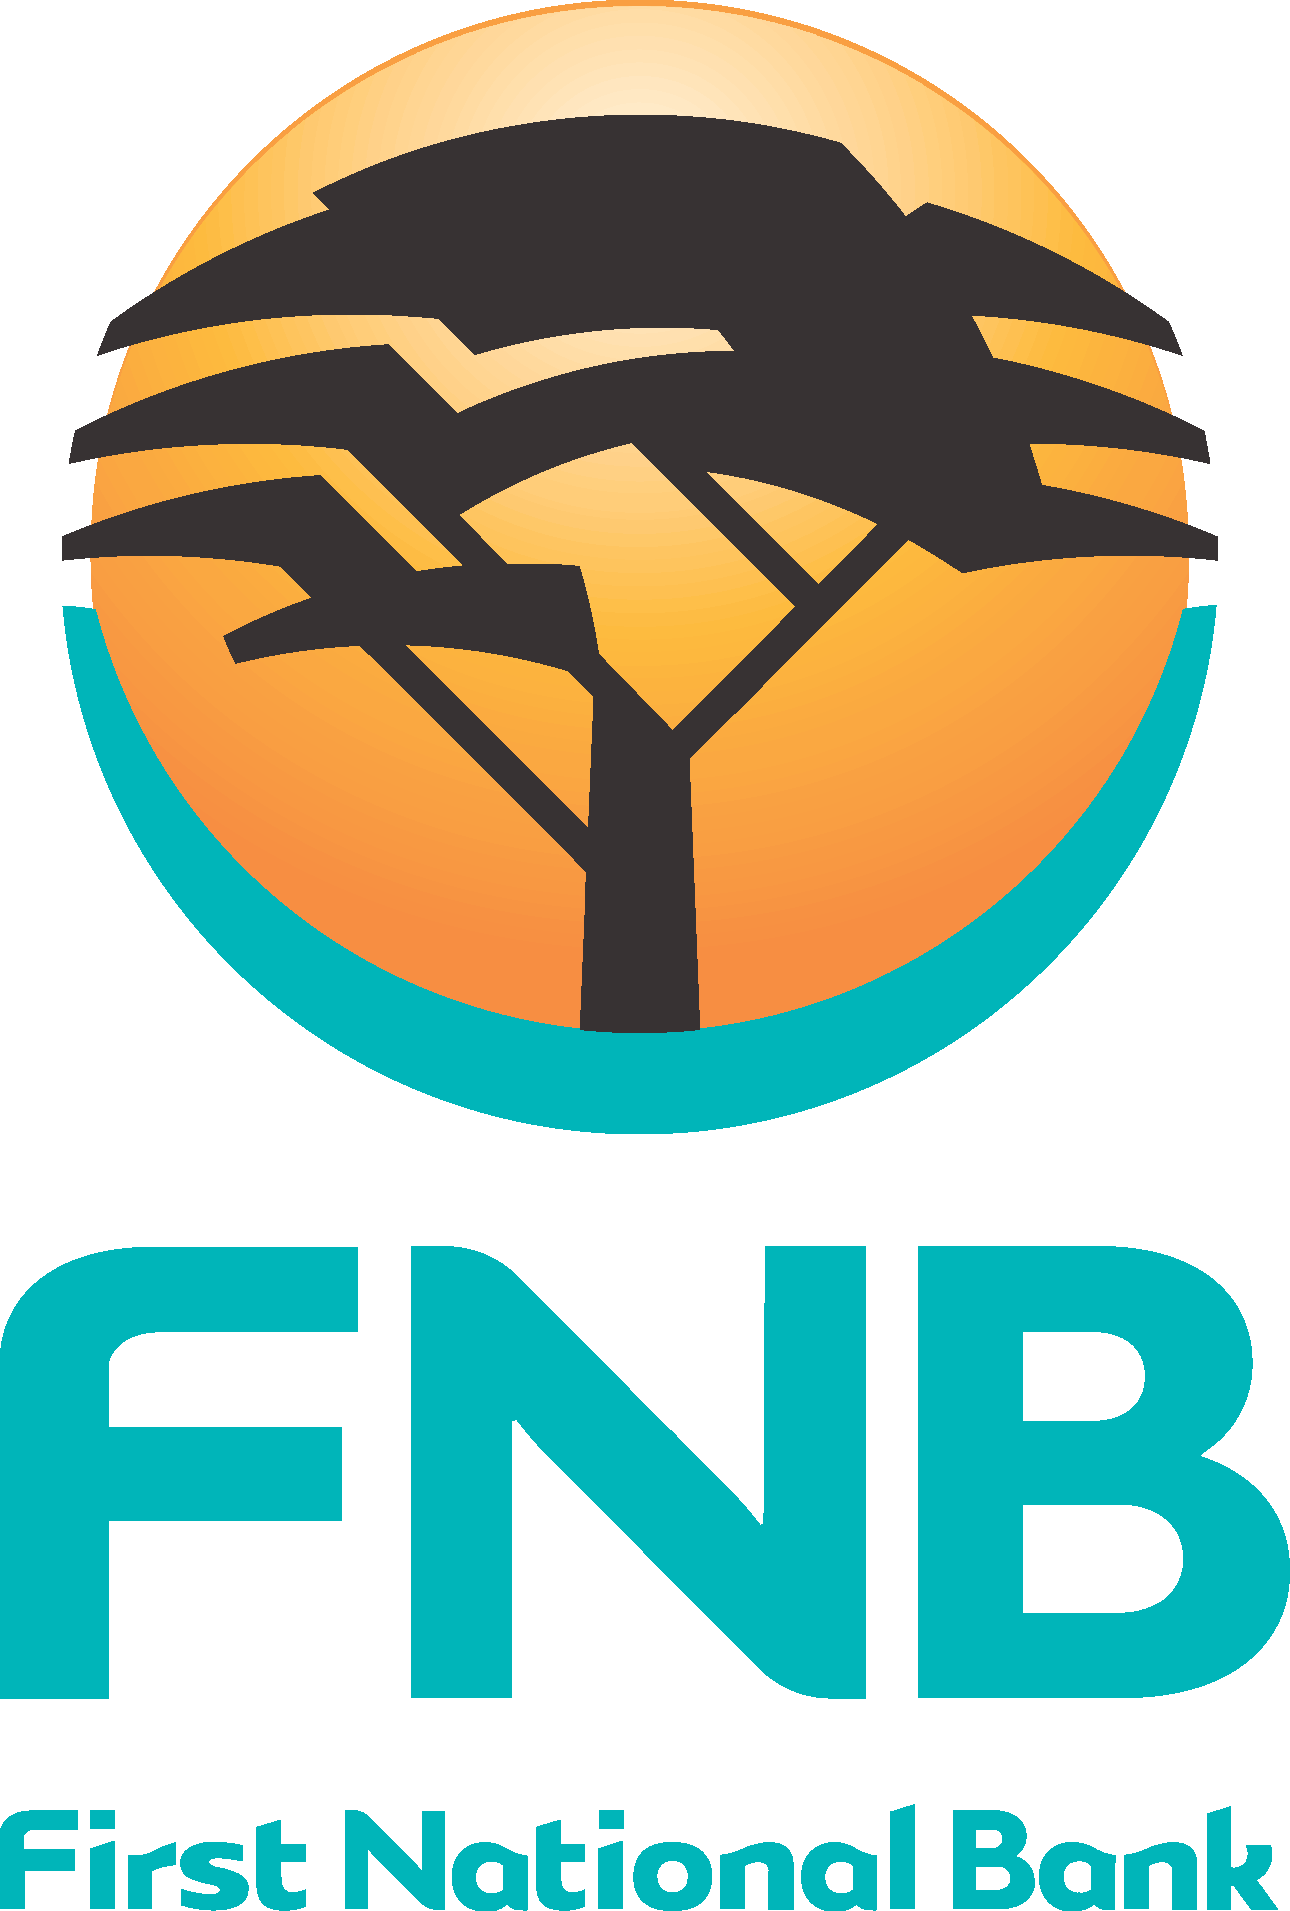 First national bank clipart vector freeuse stock FNB Bank [First National Bank] Vector Icon Template Clipart Free ... vector freeuse stock